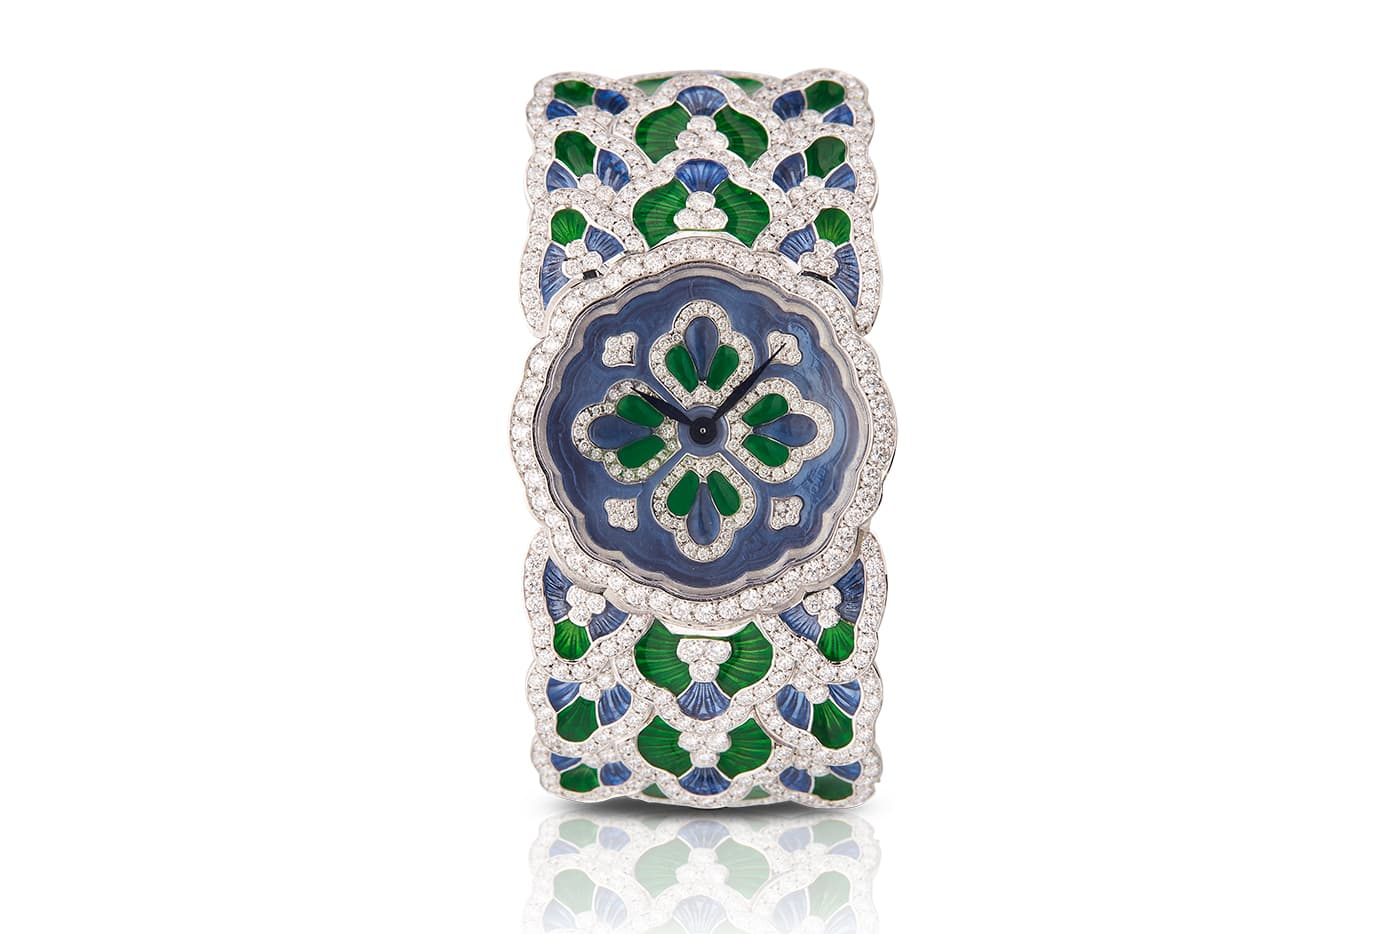 Buccellati 'Bluebell' watch with 11.35ct diamonds and guilloché enamel on white gold